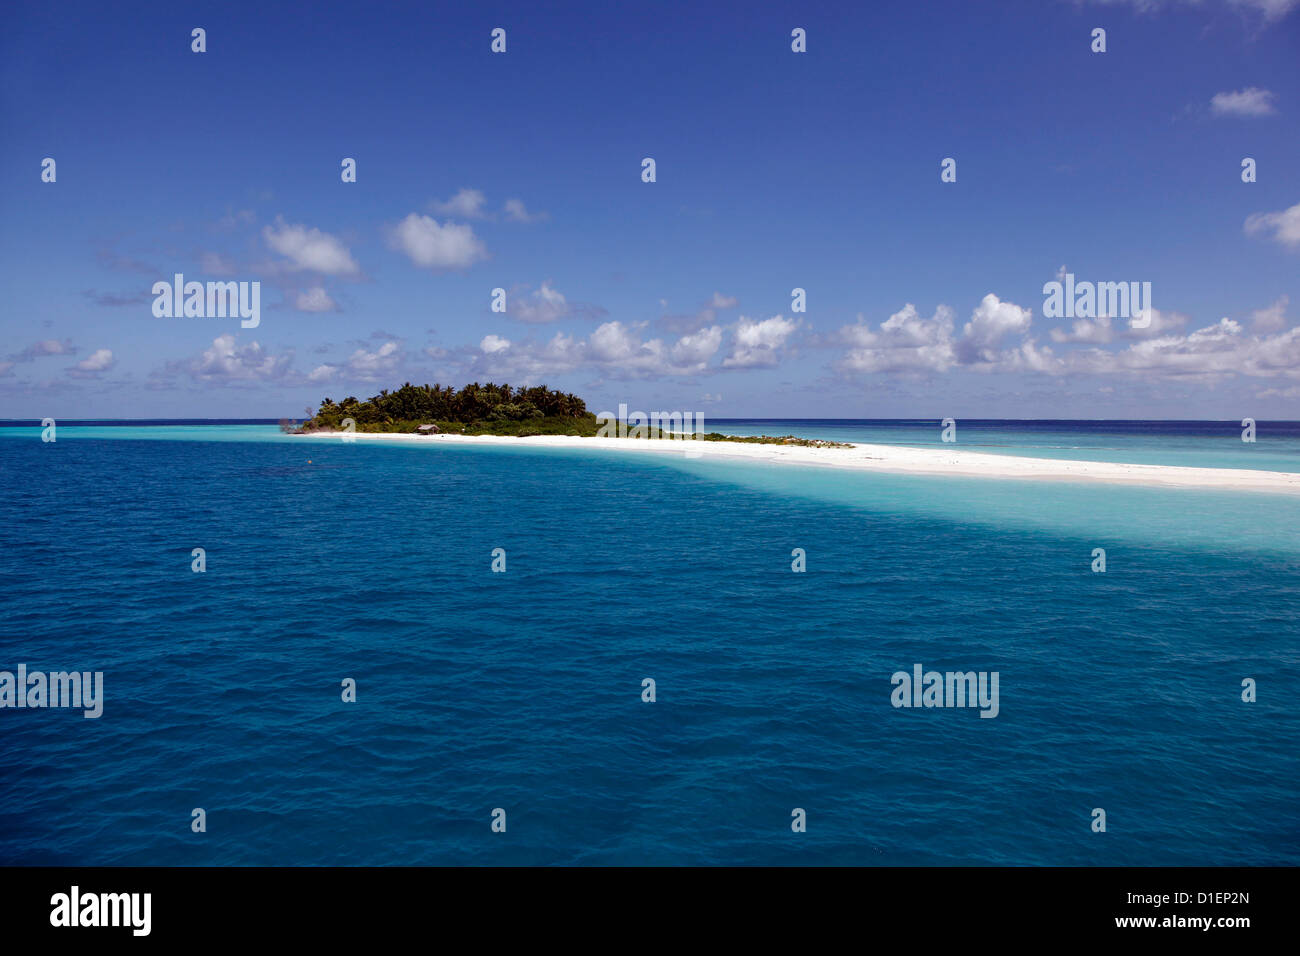 Small island in the the Baa Atoll, Maldives - Stock Image